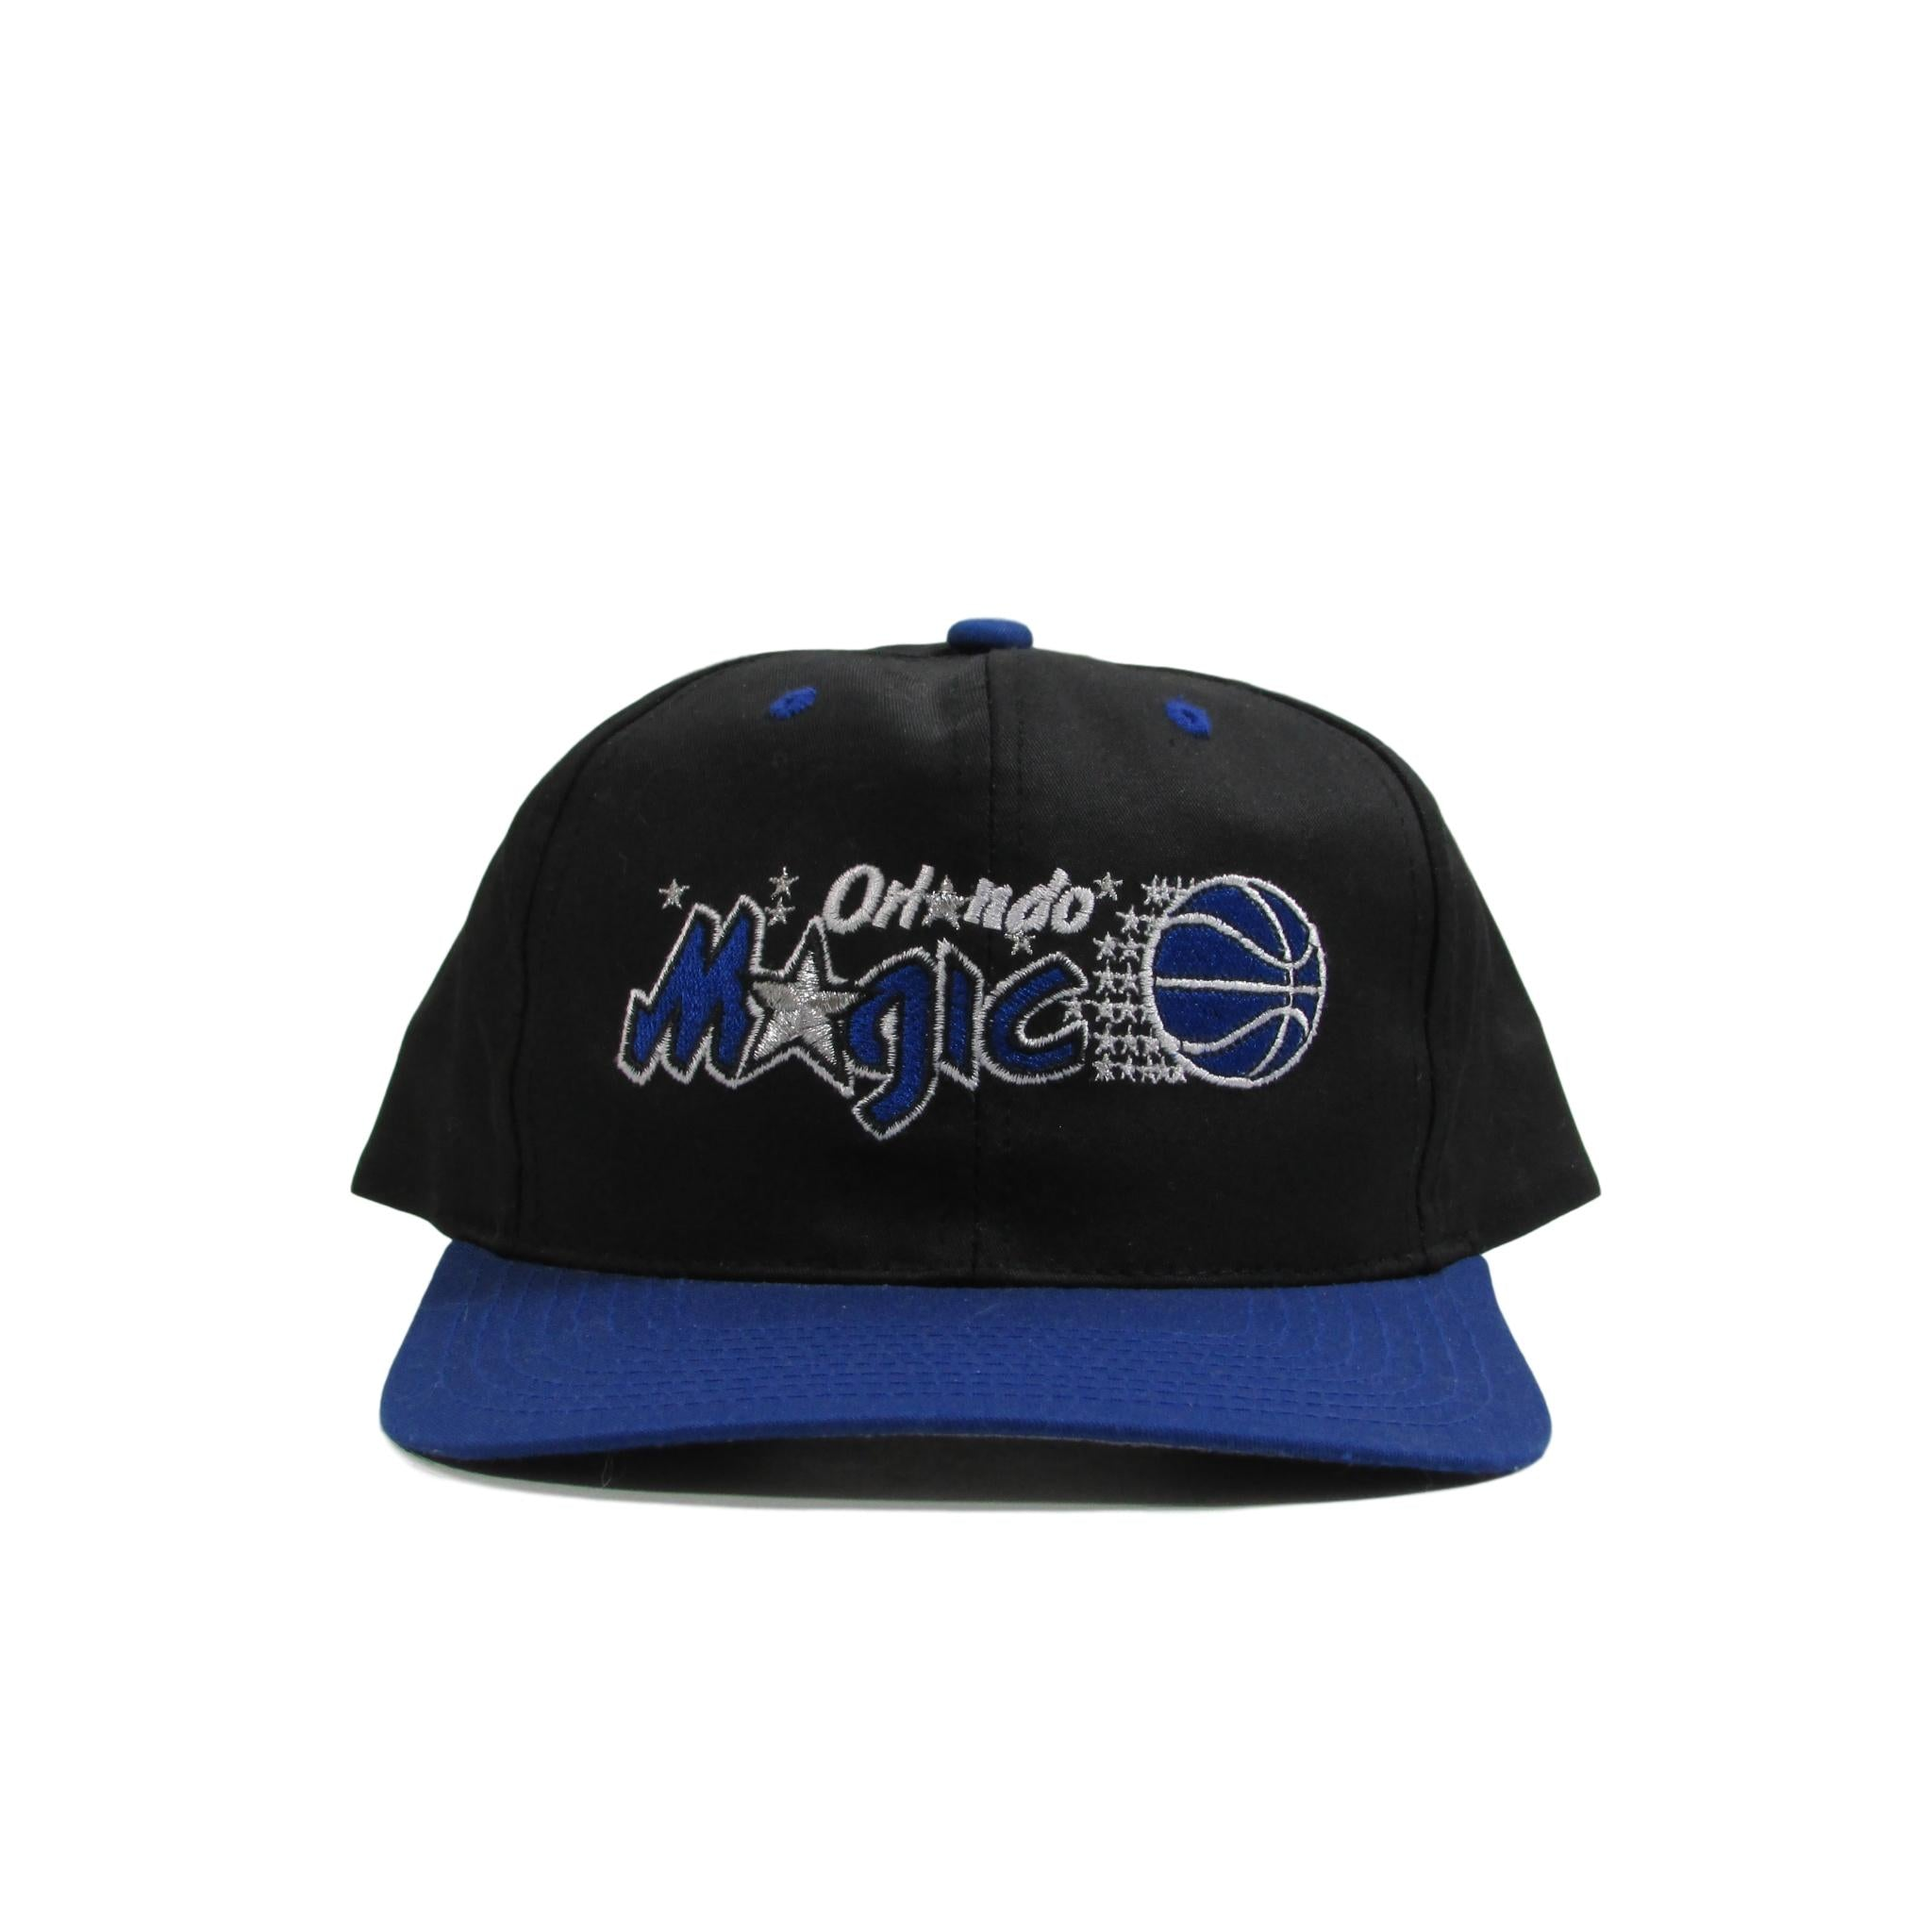 Orlando Magic 1989 Deadstock Logo Vintage Basketball Snapback Hat